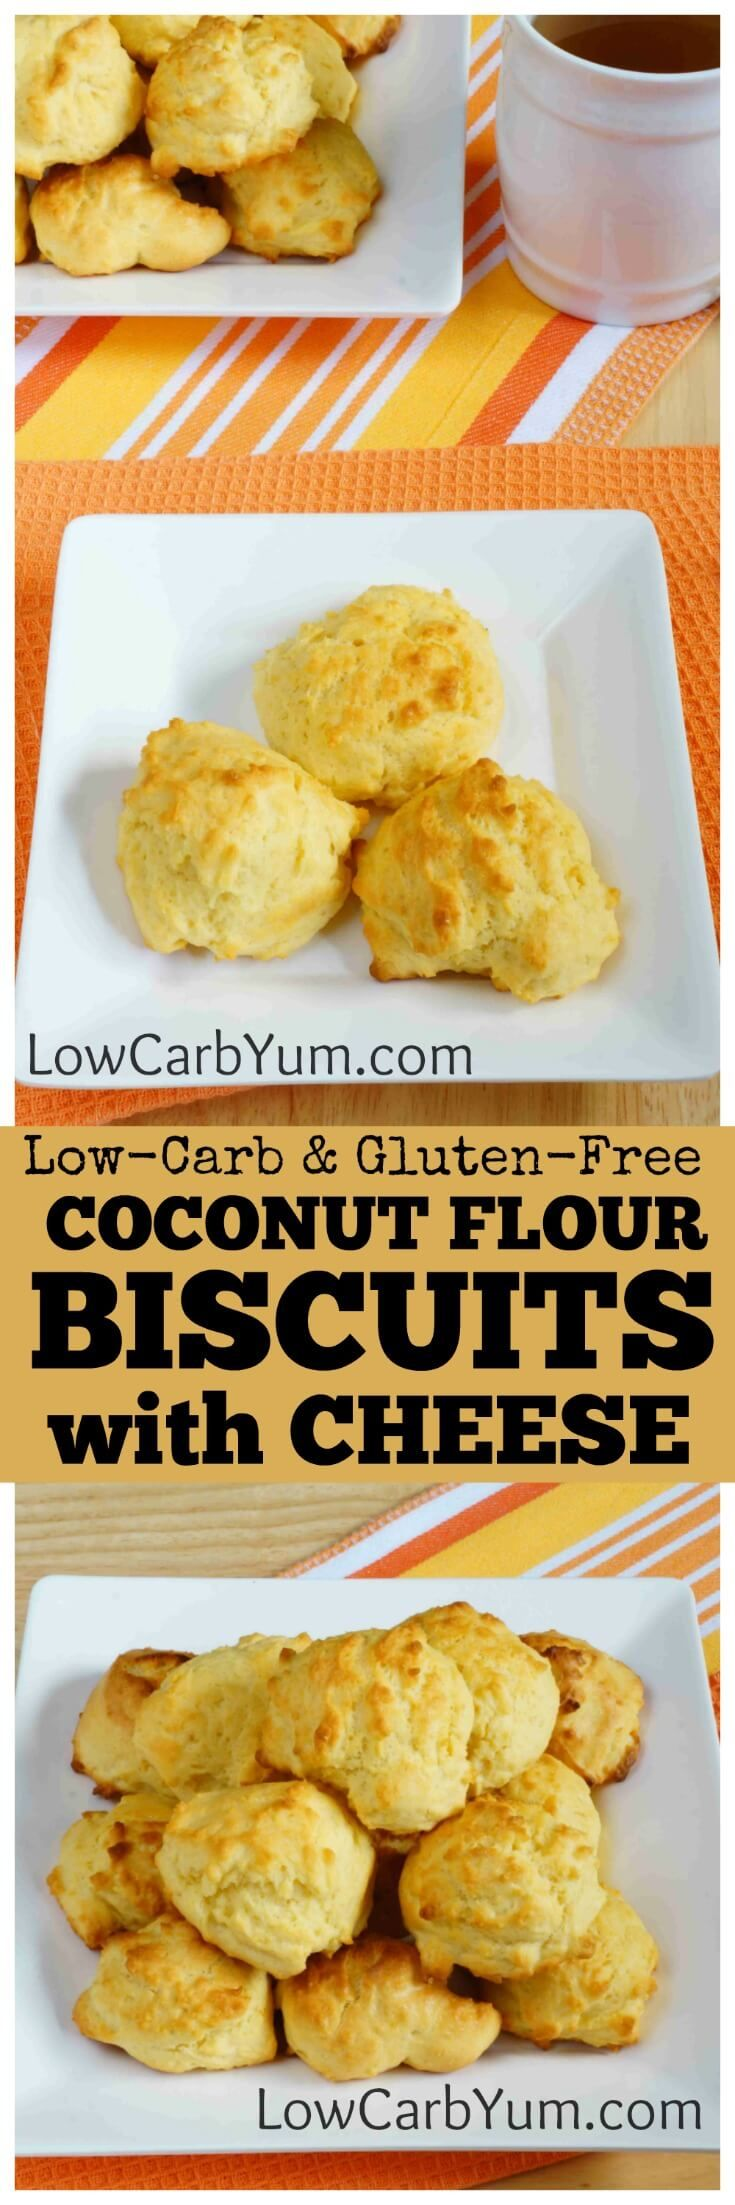 If you miss the warmth of freshly baked bread, these coconut flour biscuits are sure to please. They are full of cheese with a touch of garlic.